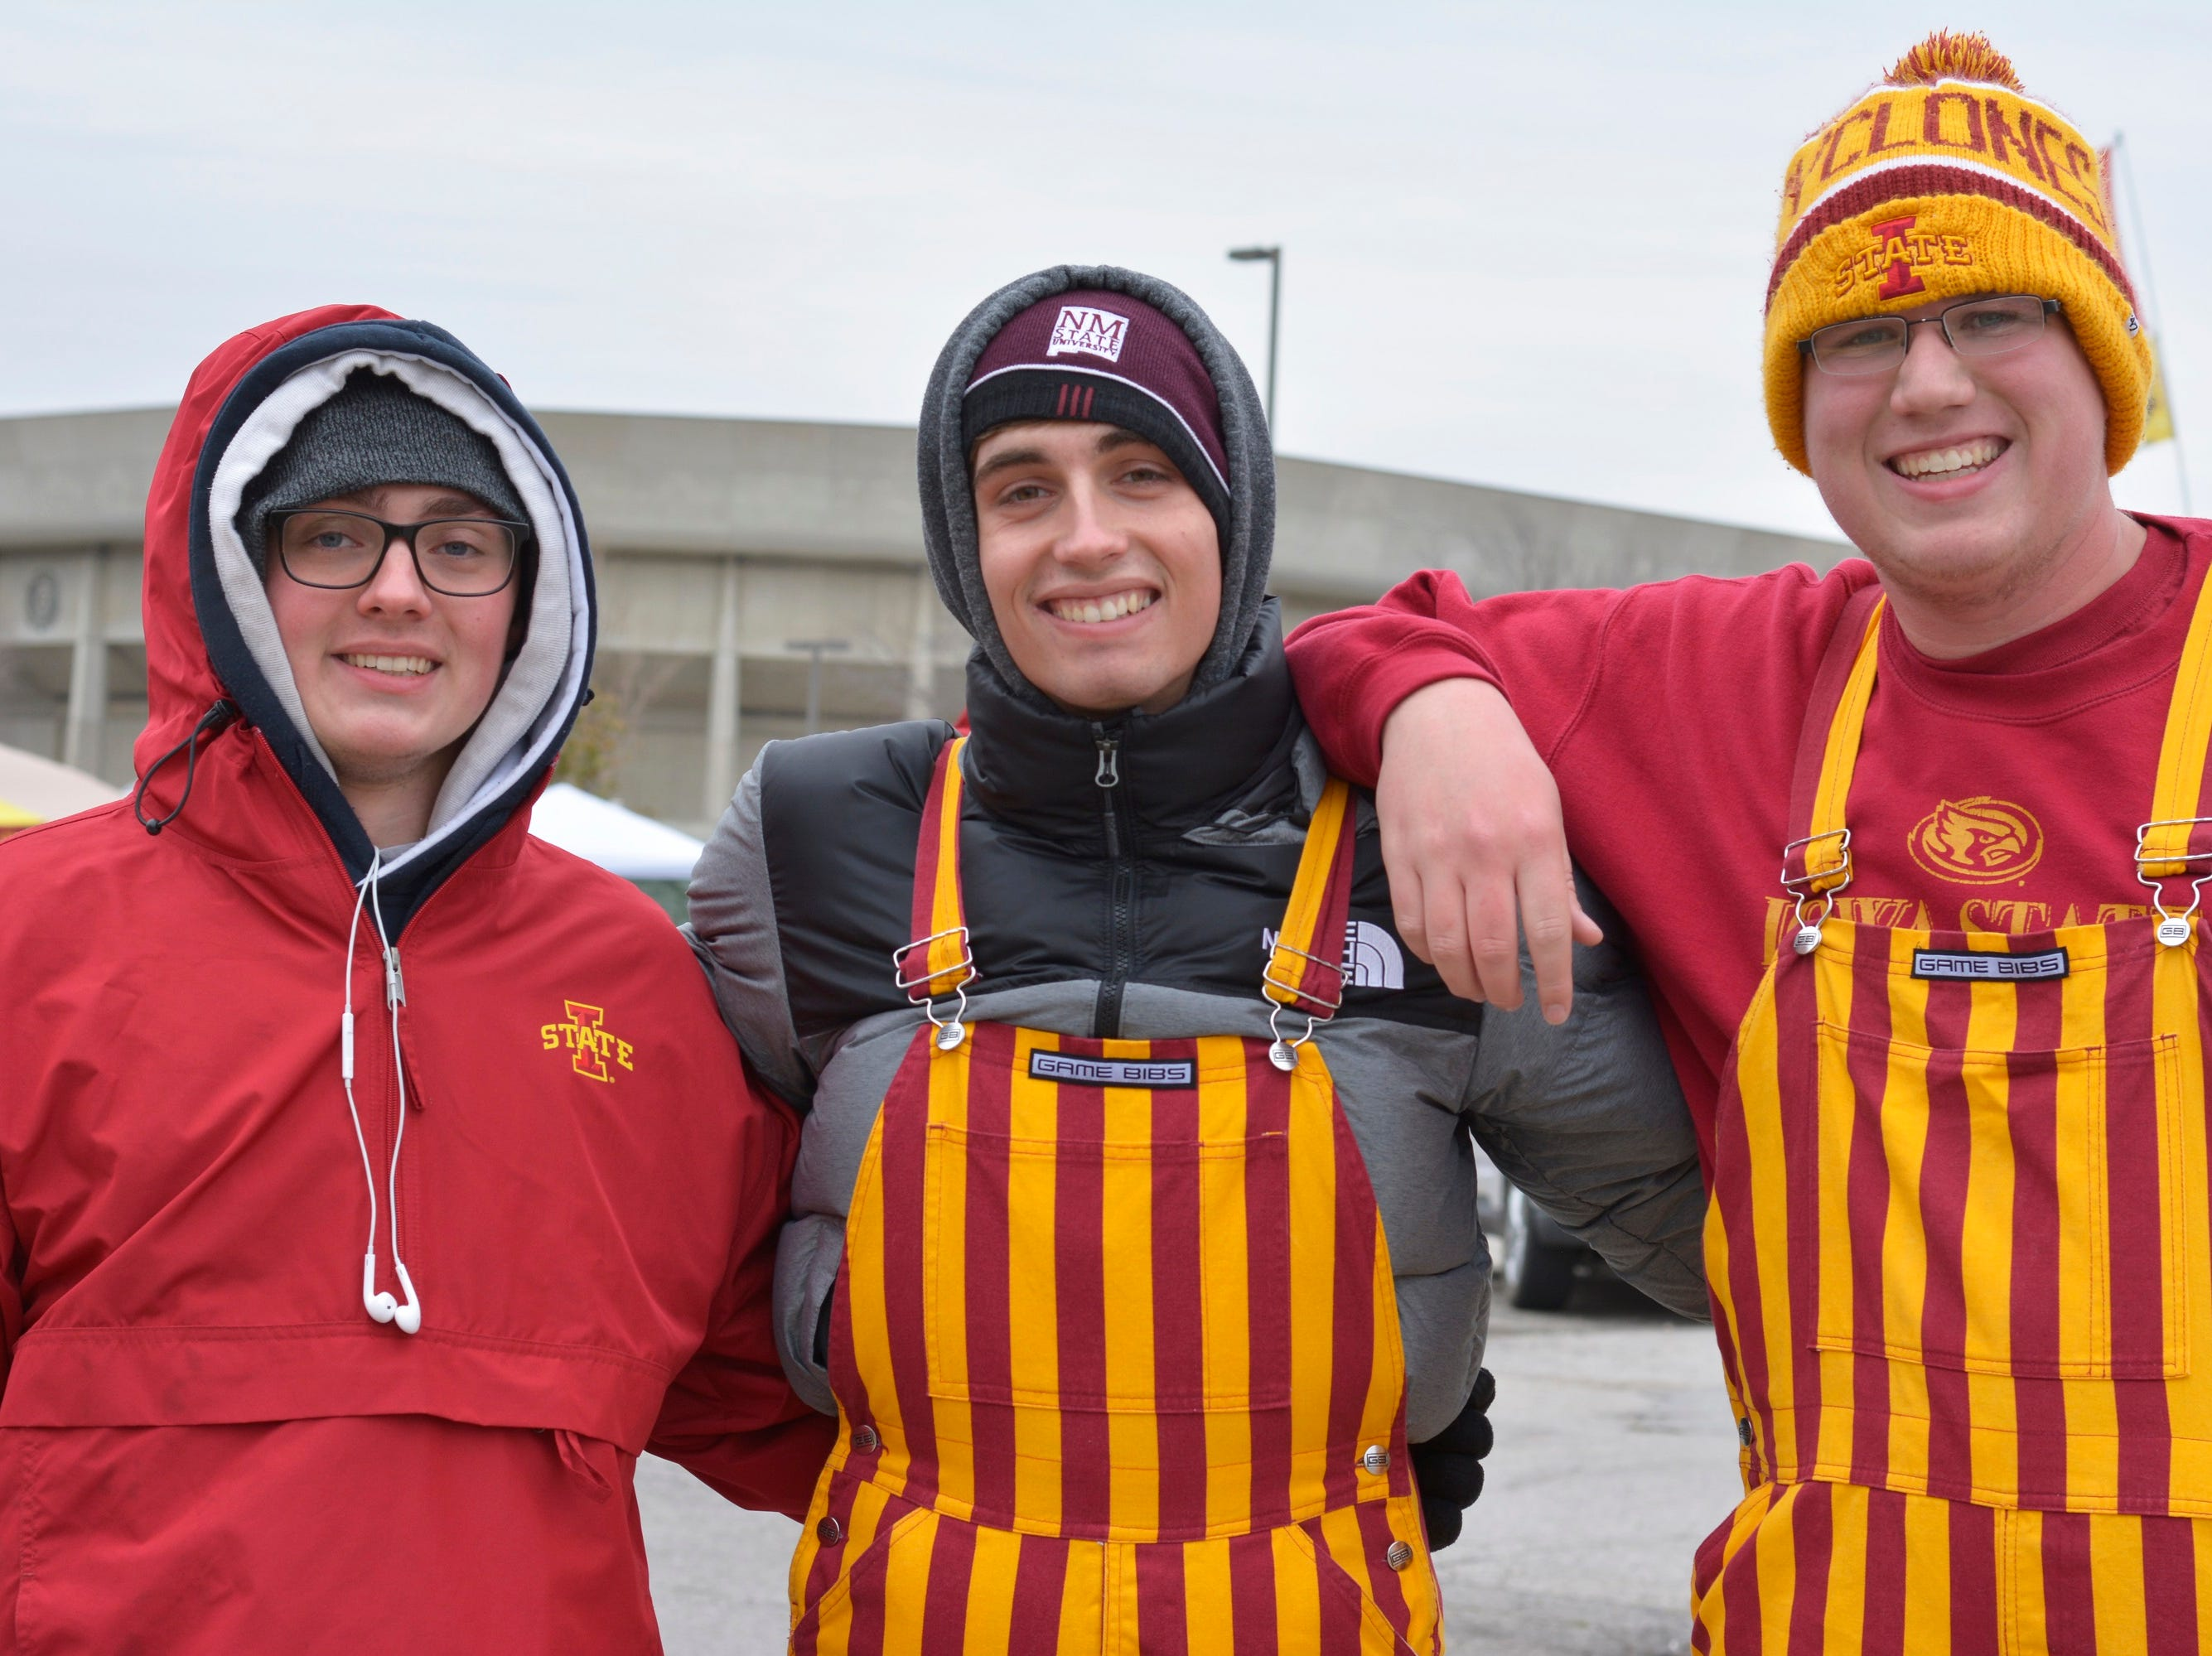 Gary Kolodzik (left), Carter Fietek (middle) and Mason Hoel (right) before the Iowa State University football game against Baylor in Ames on Nov. 10.